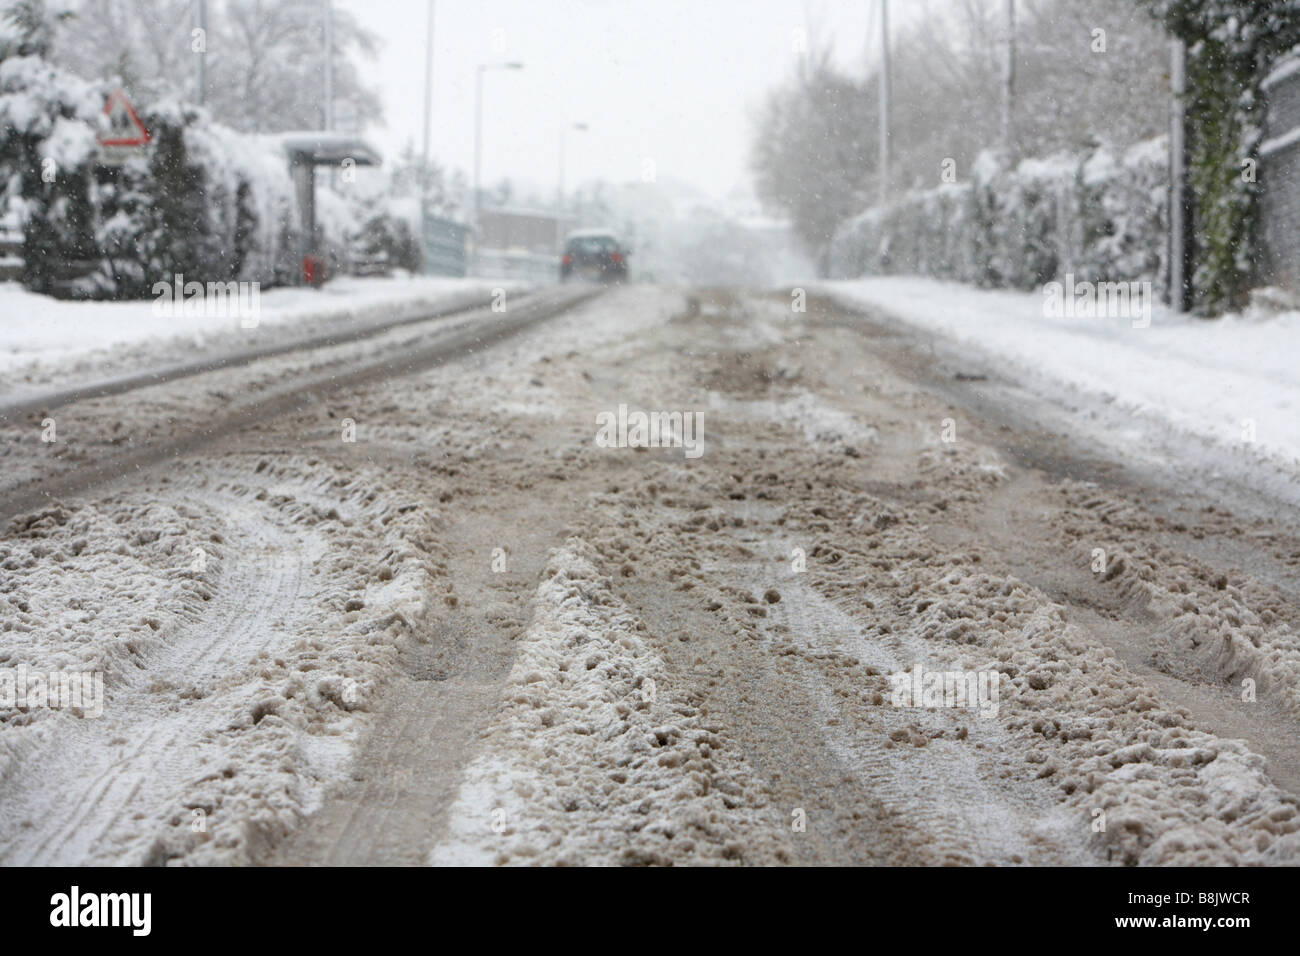 gritted salted lying snow turning to slush with tire tyre tracks going uphill in the middle of the road - Stock Image